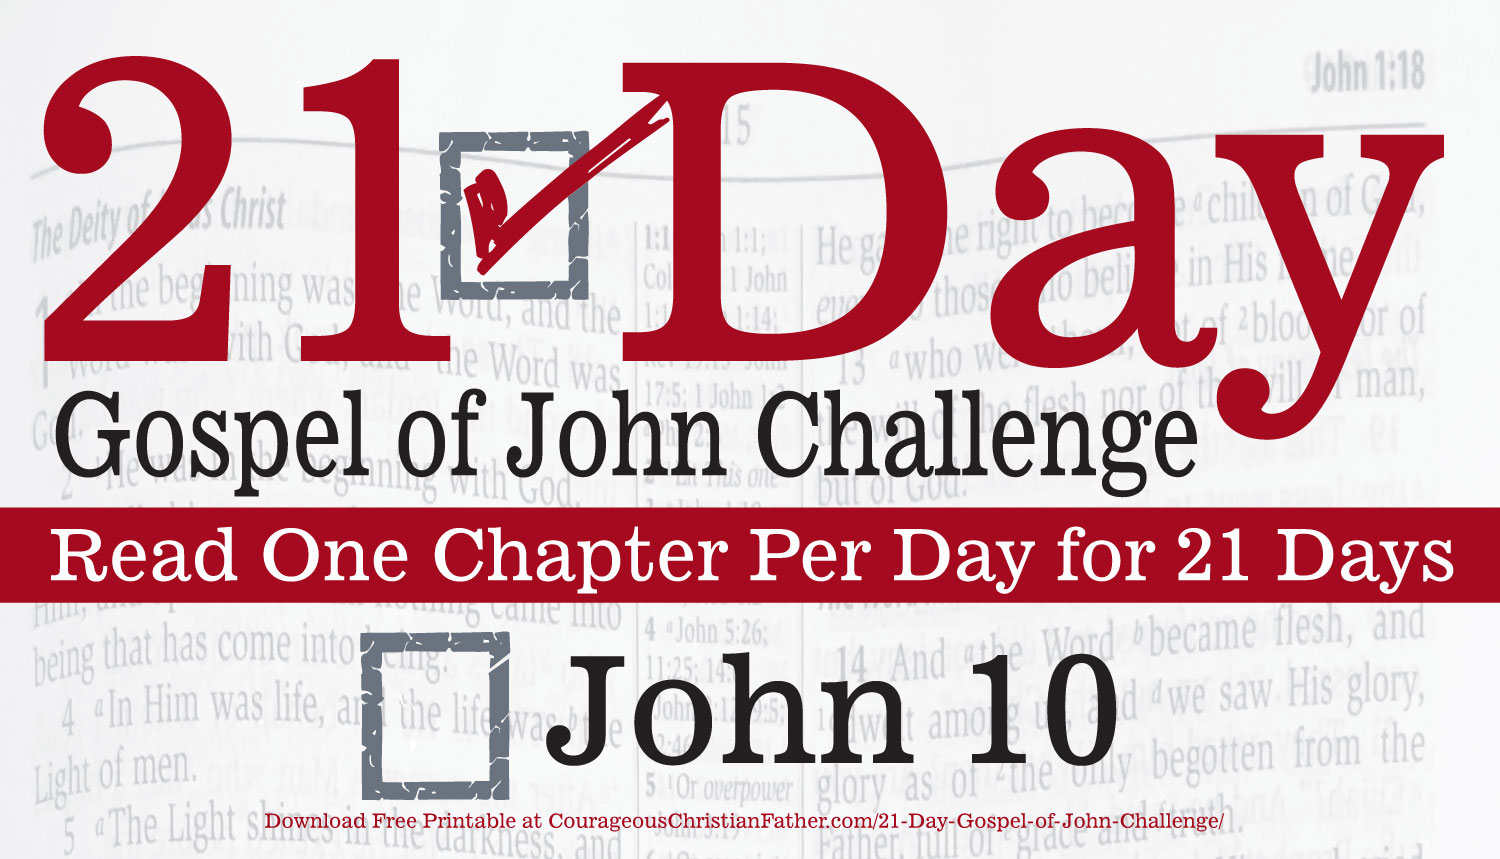 John 10 - Today is Day 10 of the 21 Day Gospel of John Challenge. Today read the 10th Chapter in the Gospel of John. #John10